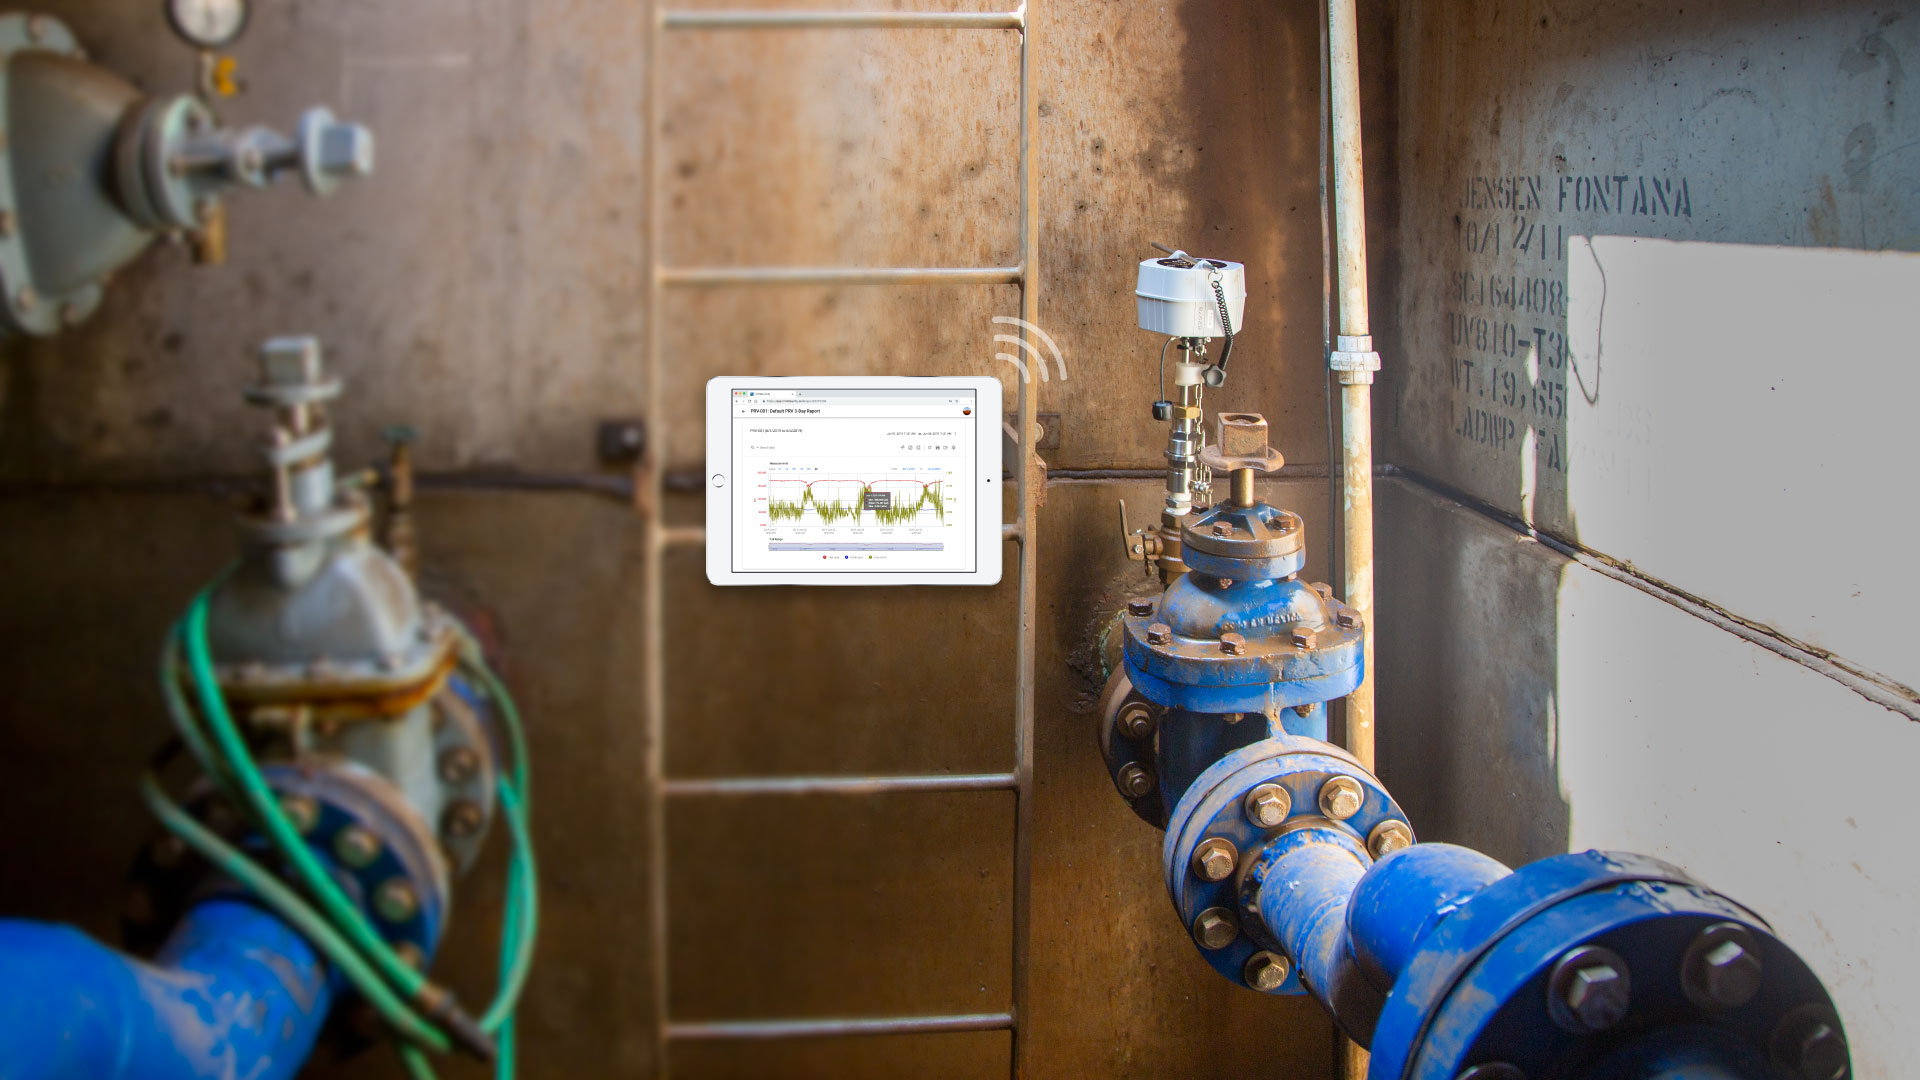 Advanced Digital Insertion Flowmeter